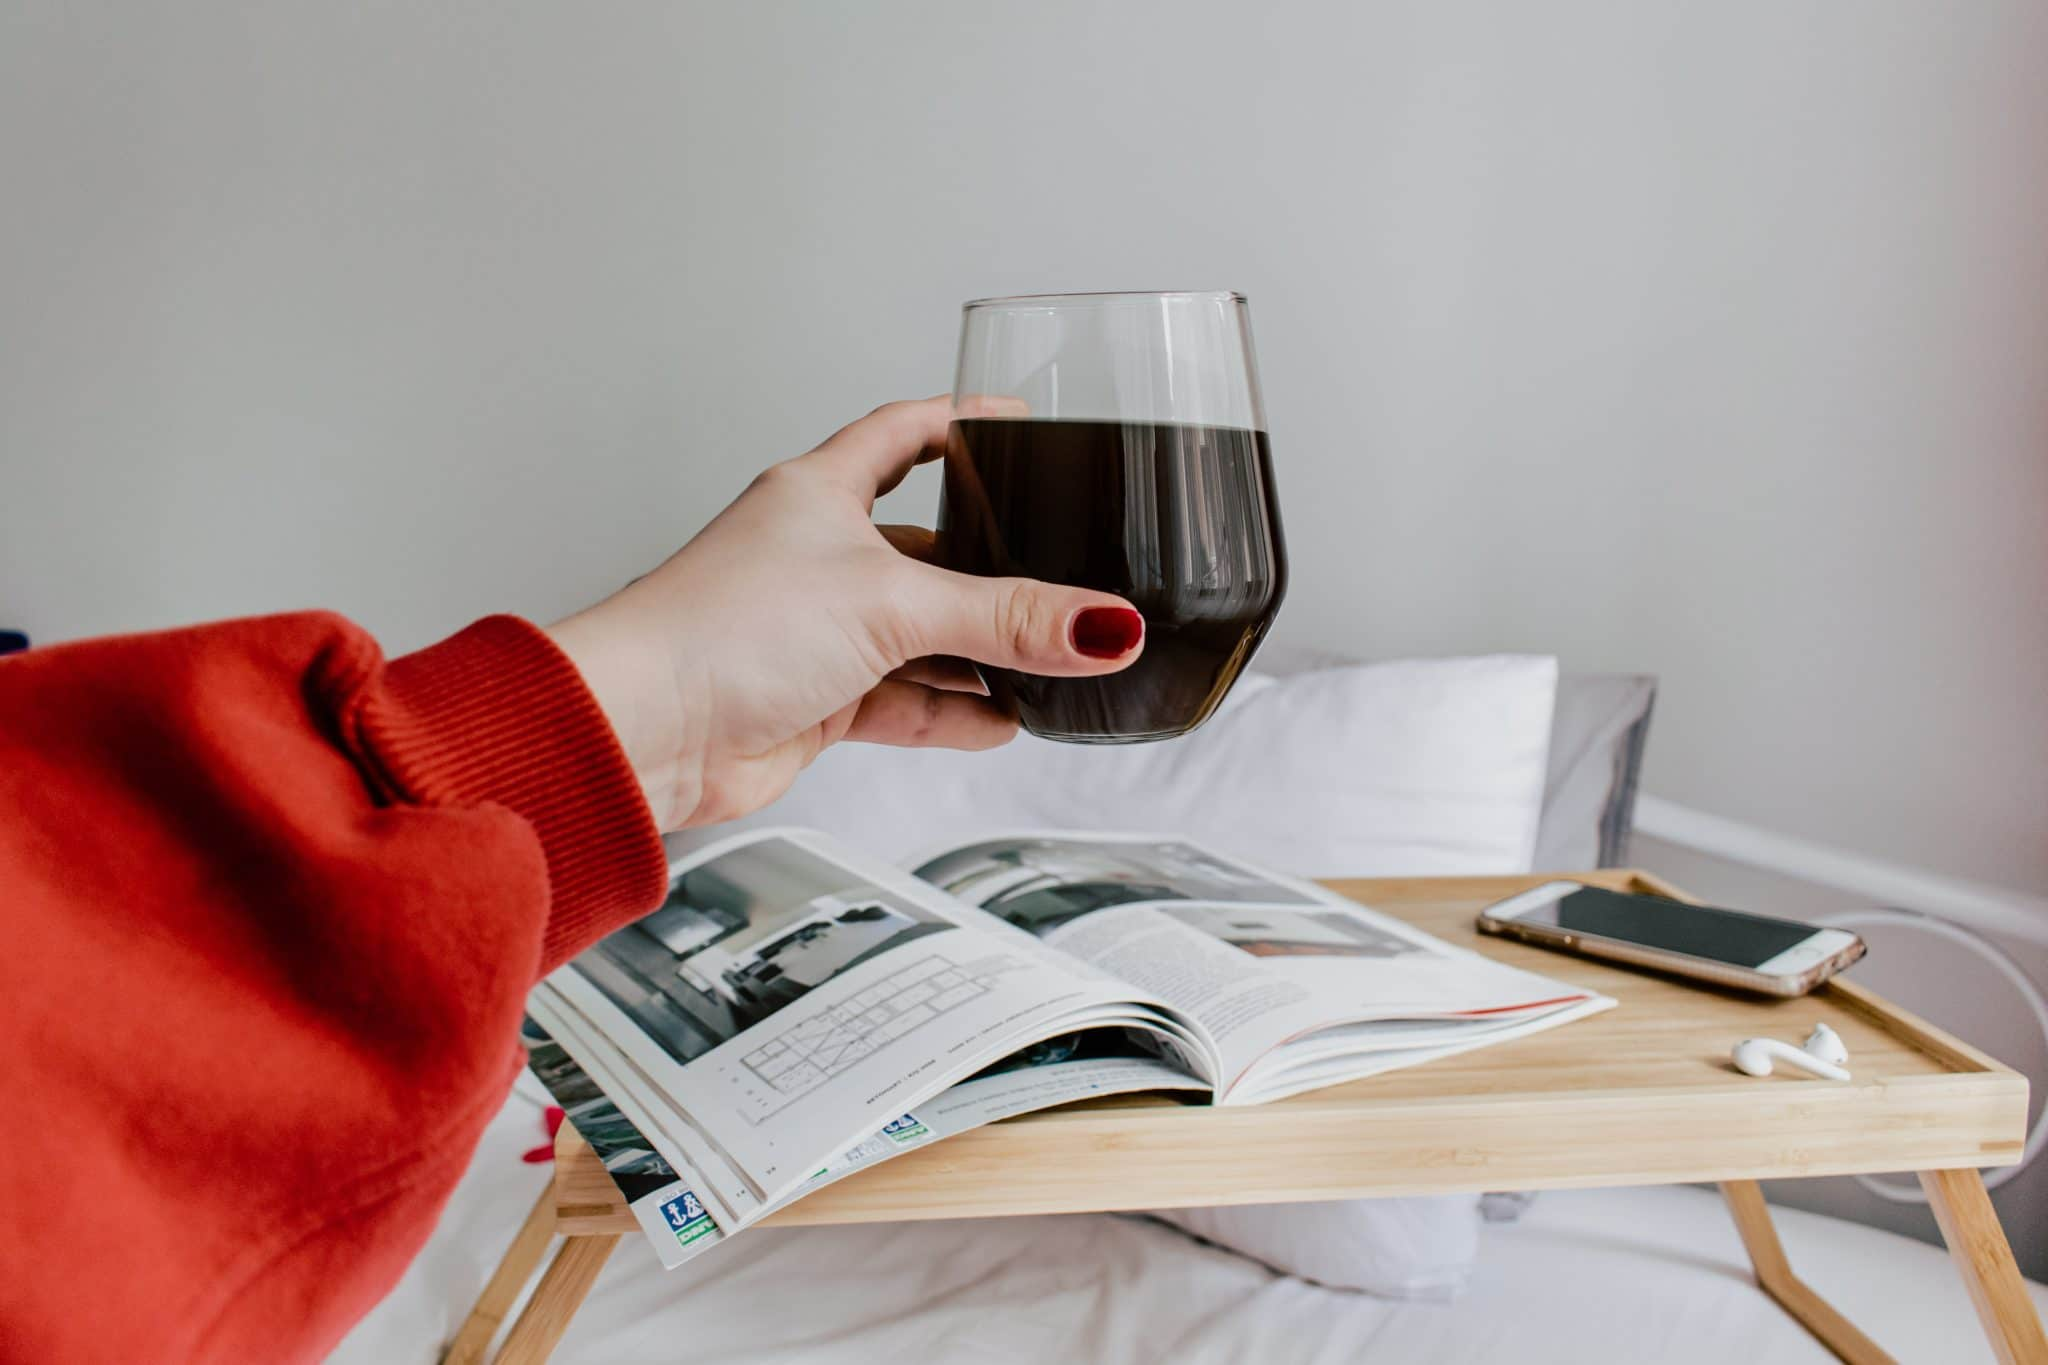 A glass of wine being held in front of a messy bed